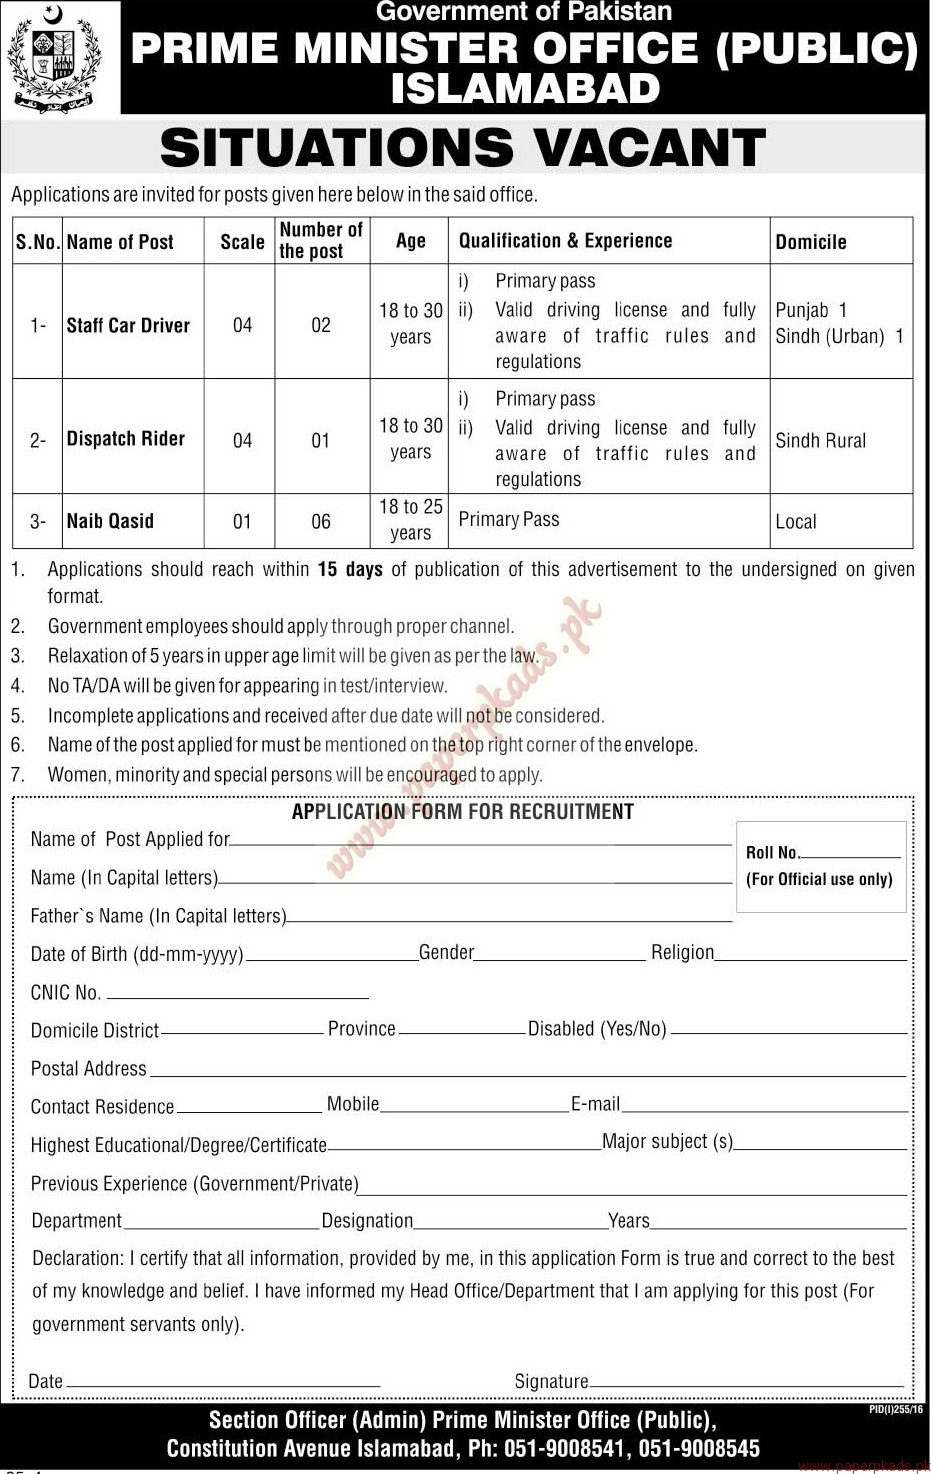 Government of pakistan prime minister office public - Prime minister office postal address ...